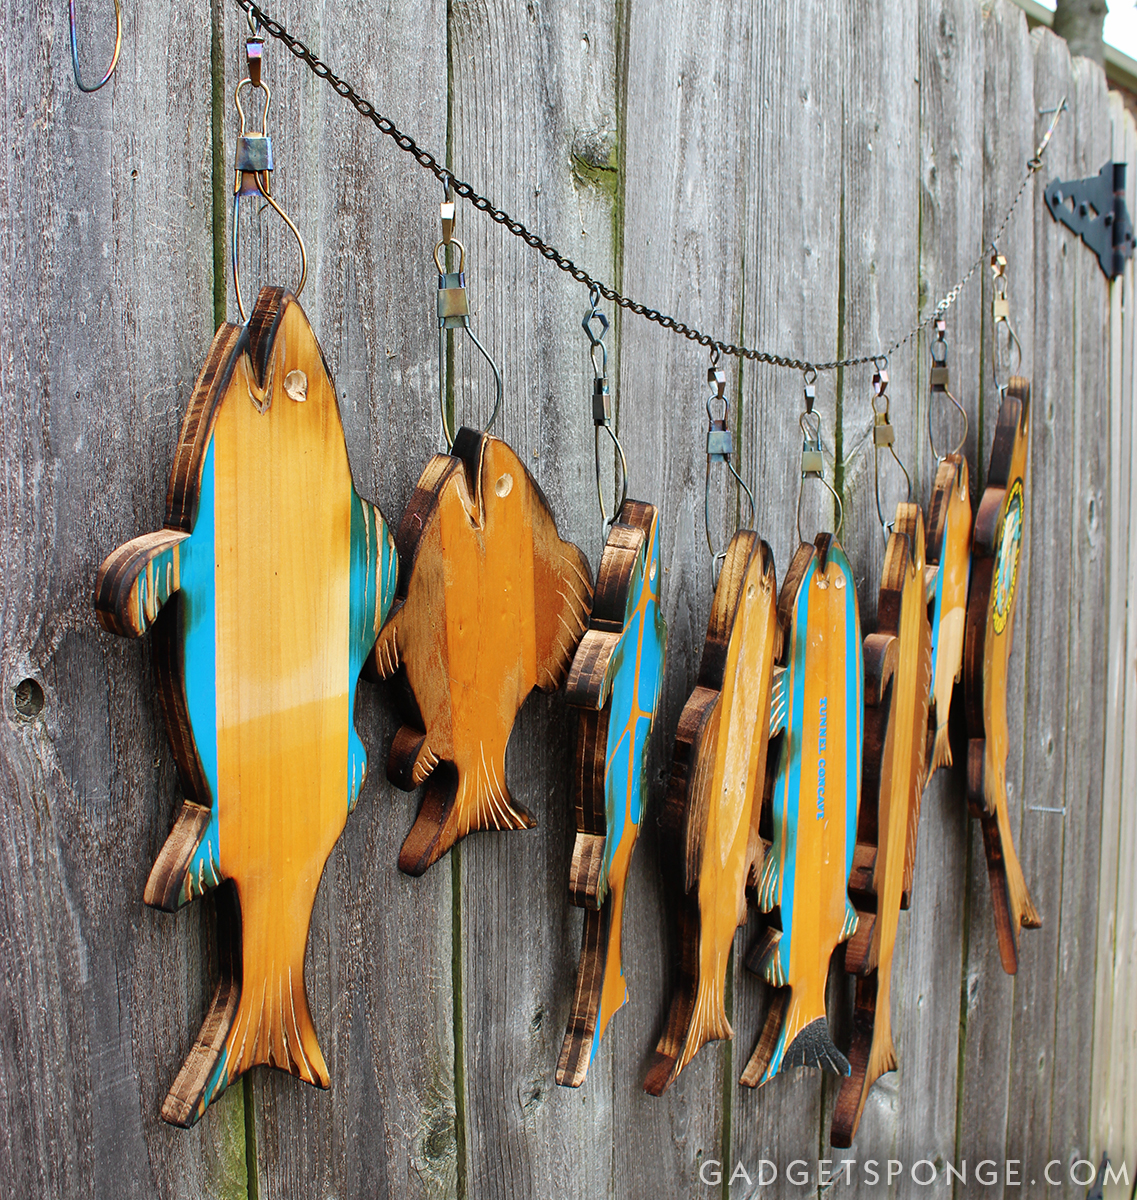 Vintage water ski fish, by GadgetSponge, featured on Funky Junk Interiors